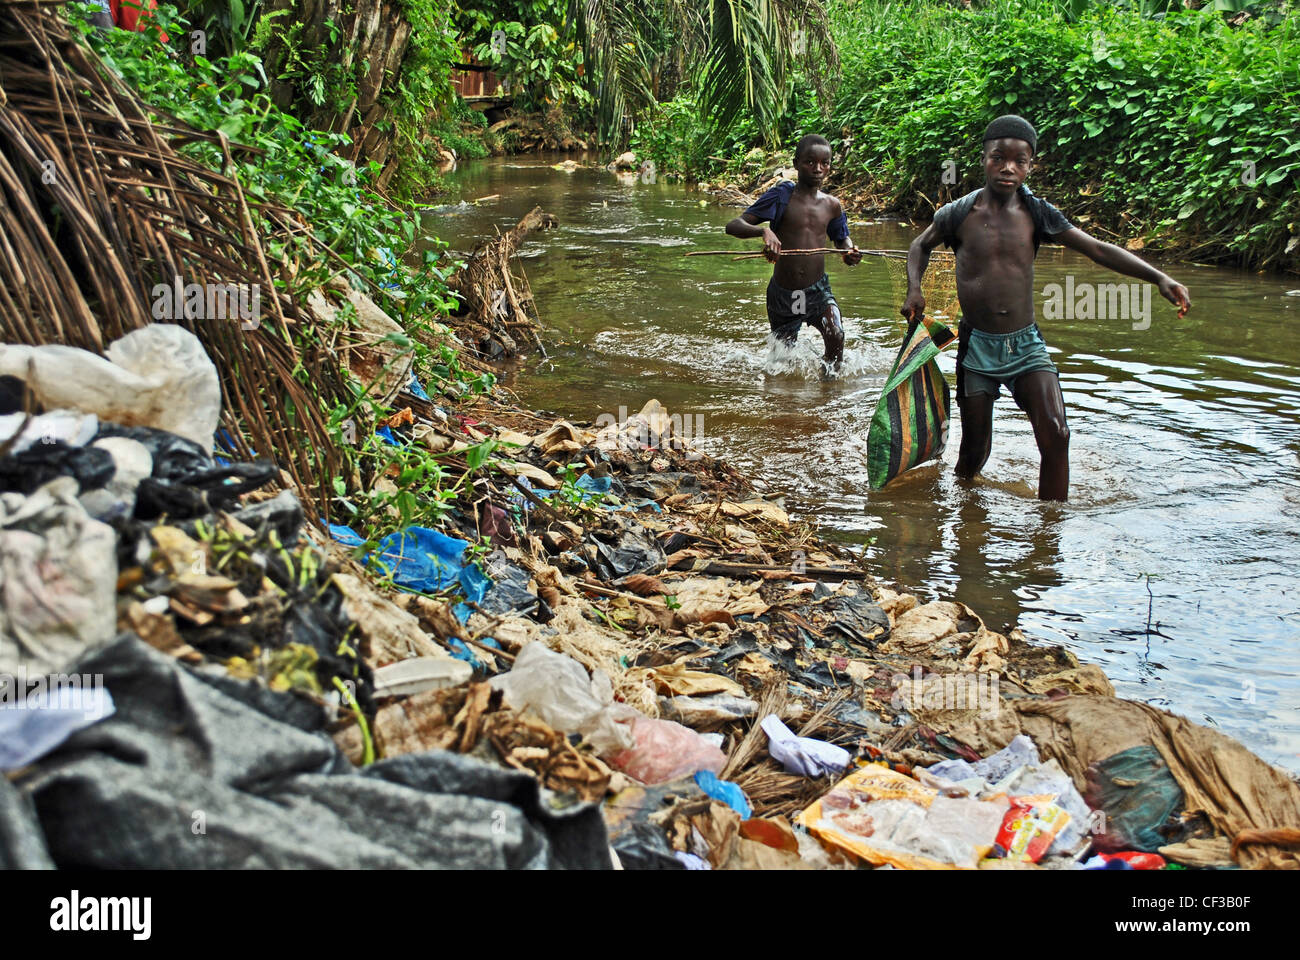 Boys fishing in a polluted stream outside Kenema, Sierra Leone - Stock Image